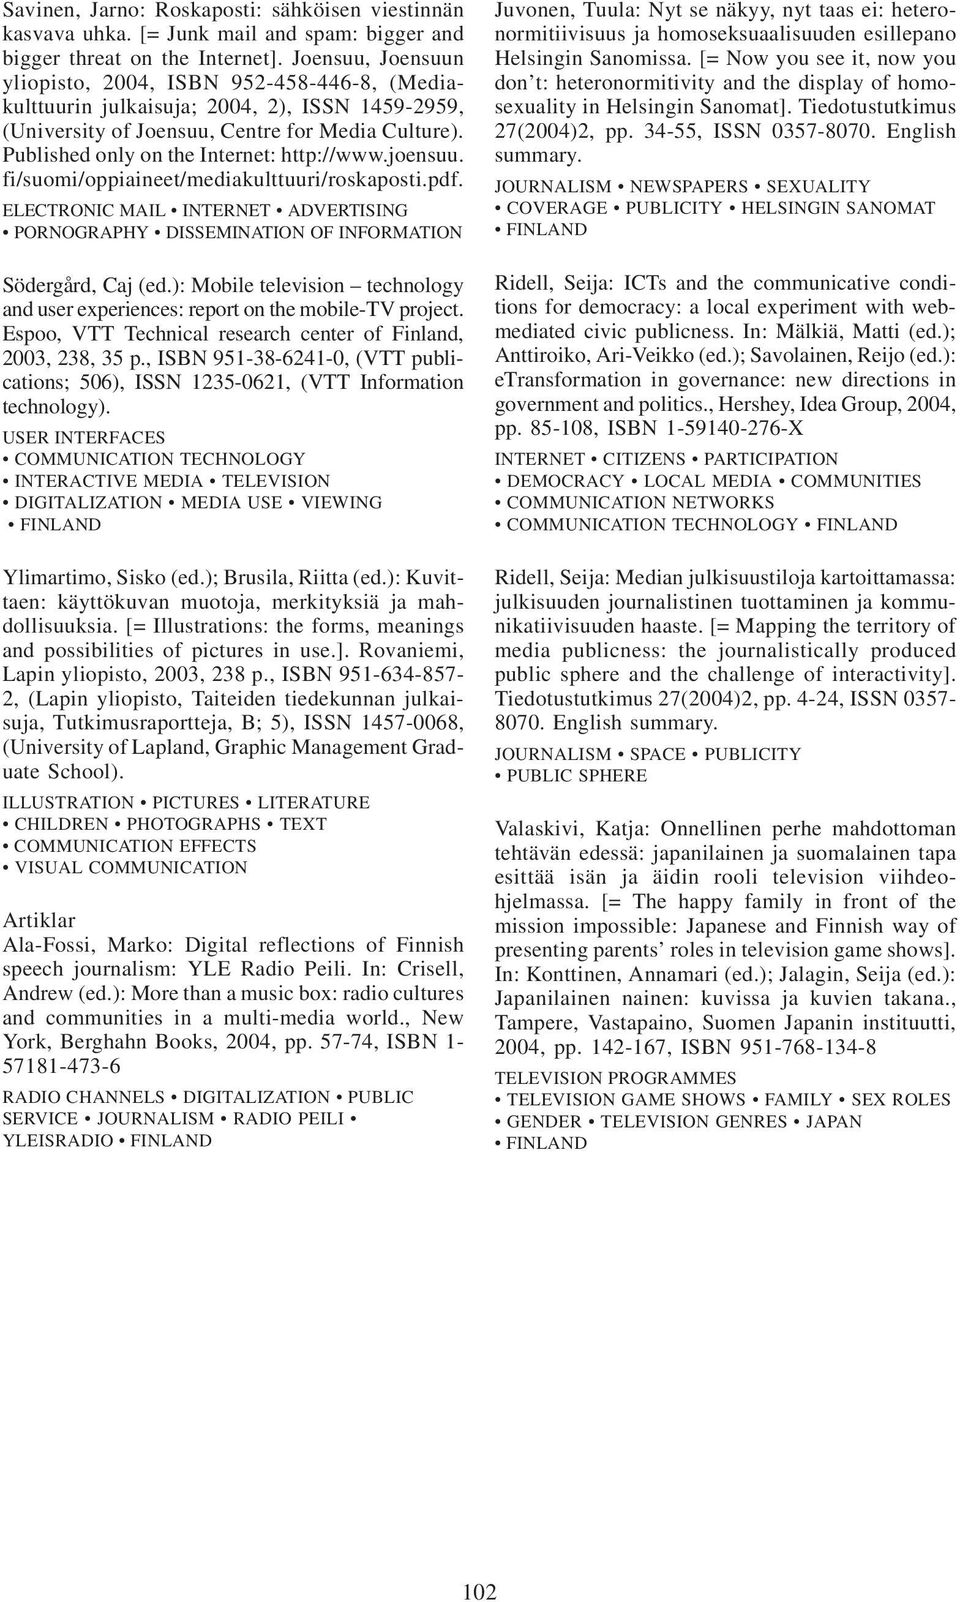 Published only on the Internet: http://www.joensuu. fi/suomi/oppiaineet/mediakulttuuri/roskaposti.pdf. ELECTRONIC MAIL INTERNET ADVERTISING PORNOGRAPHY DISSEMINATION OF INFORMATION Södergård, Caj (ed.